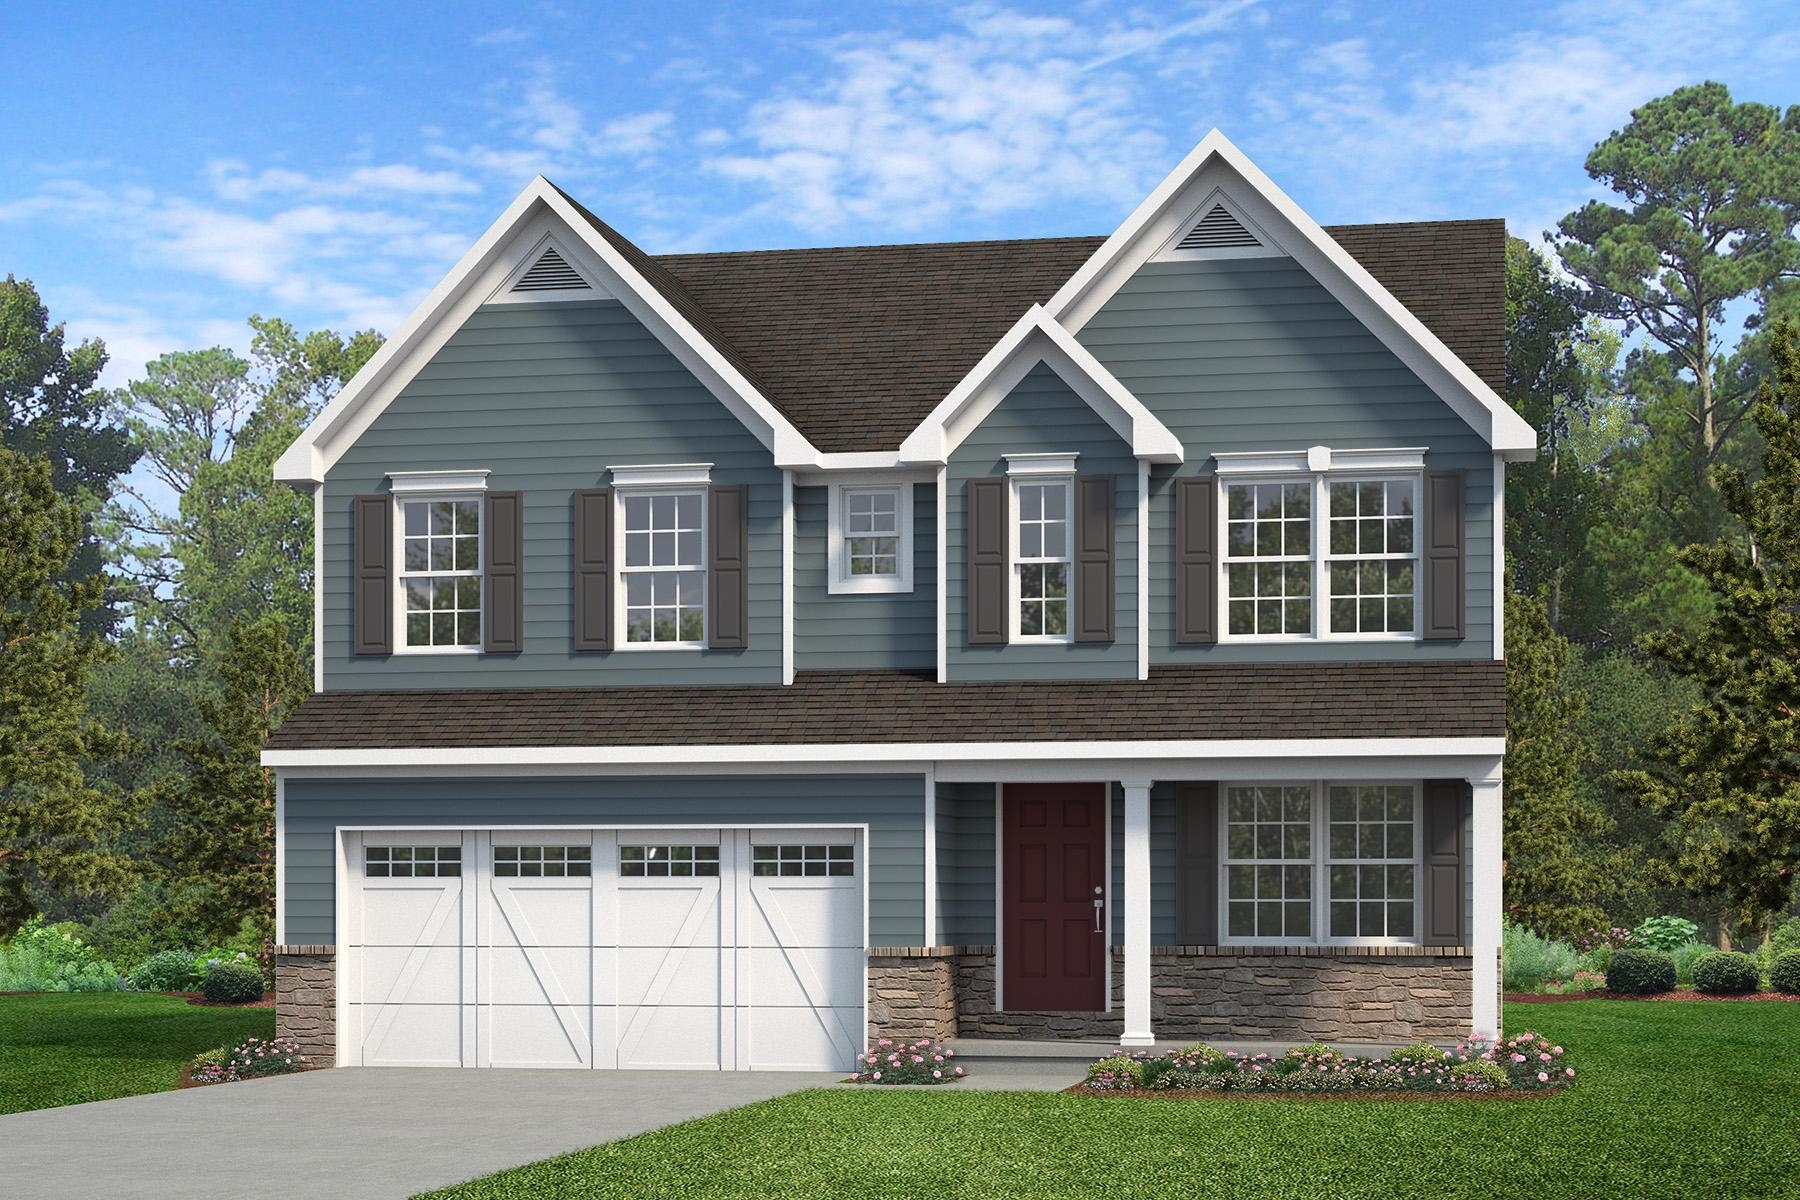 Exterior featured in the Brentwood Heritage By Keystone Custom Homes in Harrisburg, PA